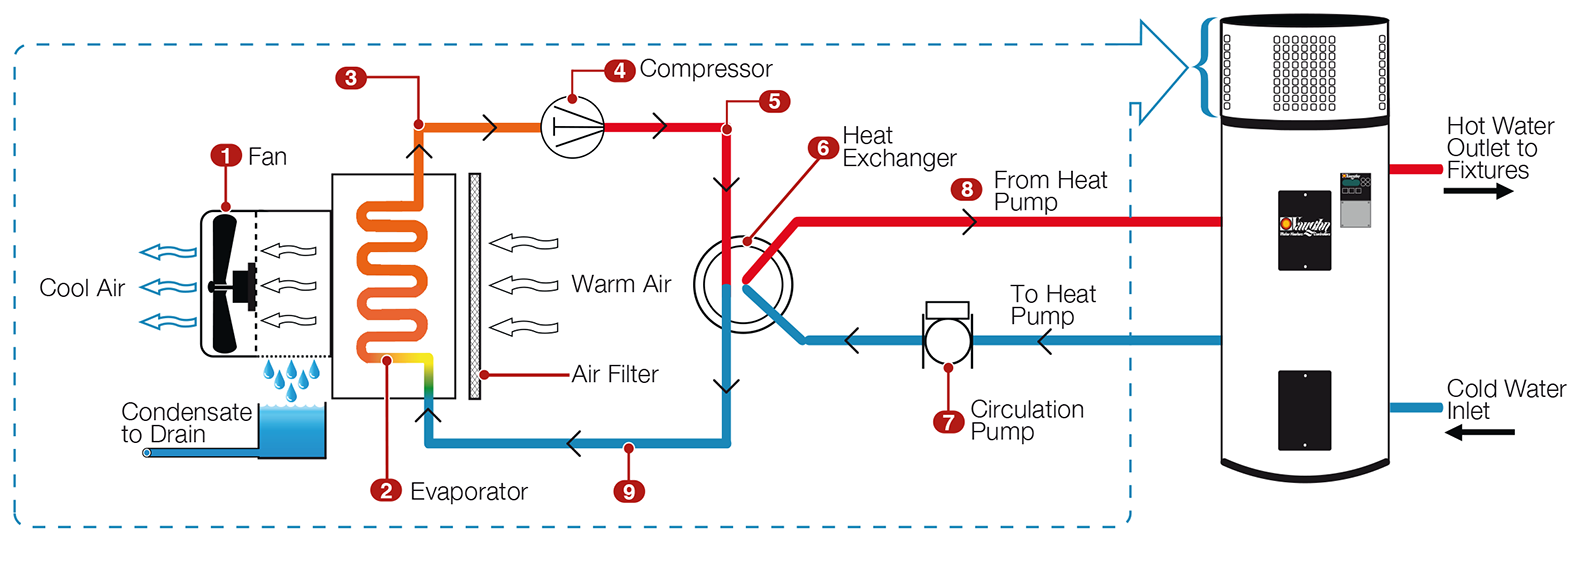 System Troubleshooting Aquatherm Heating System